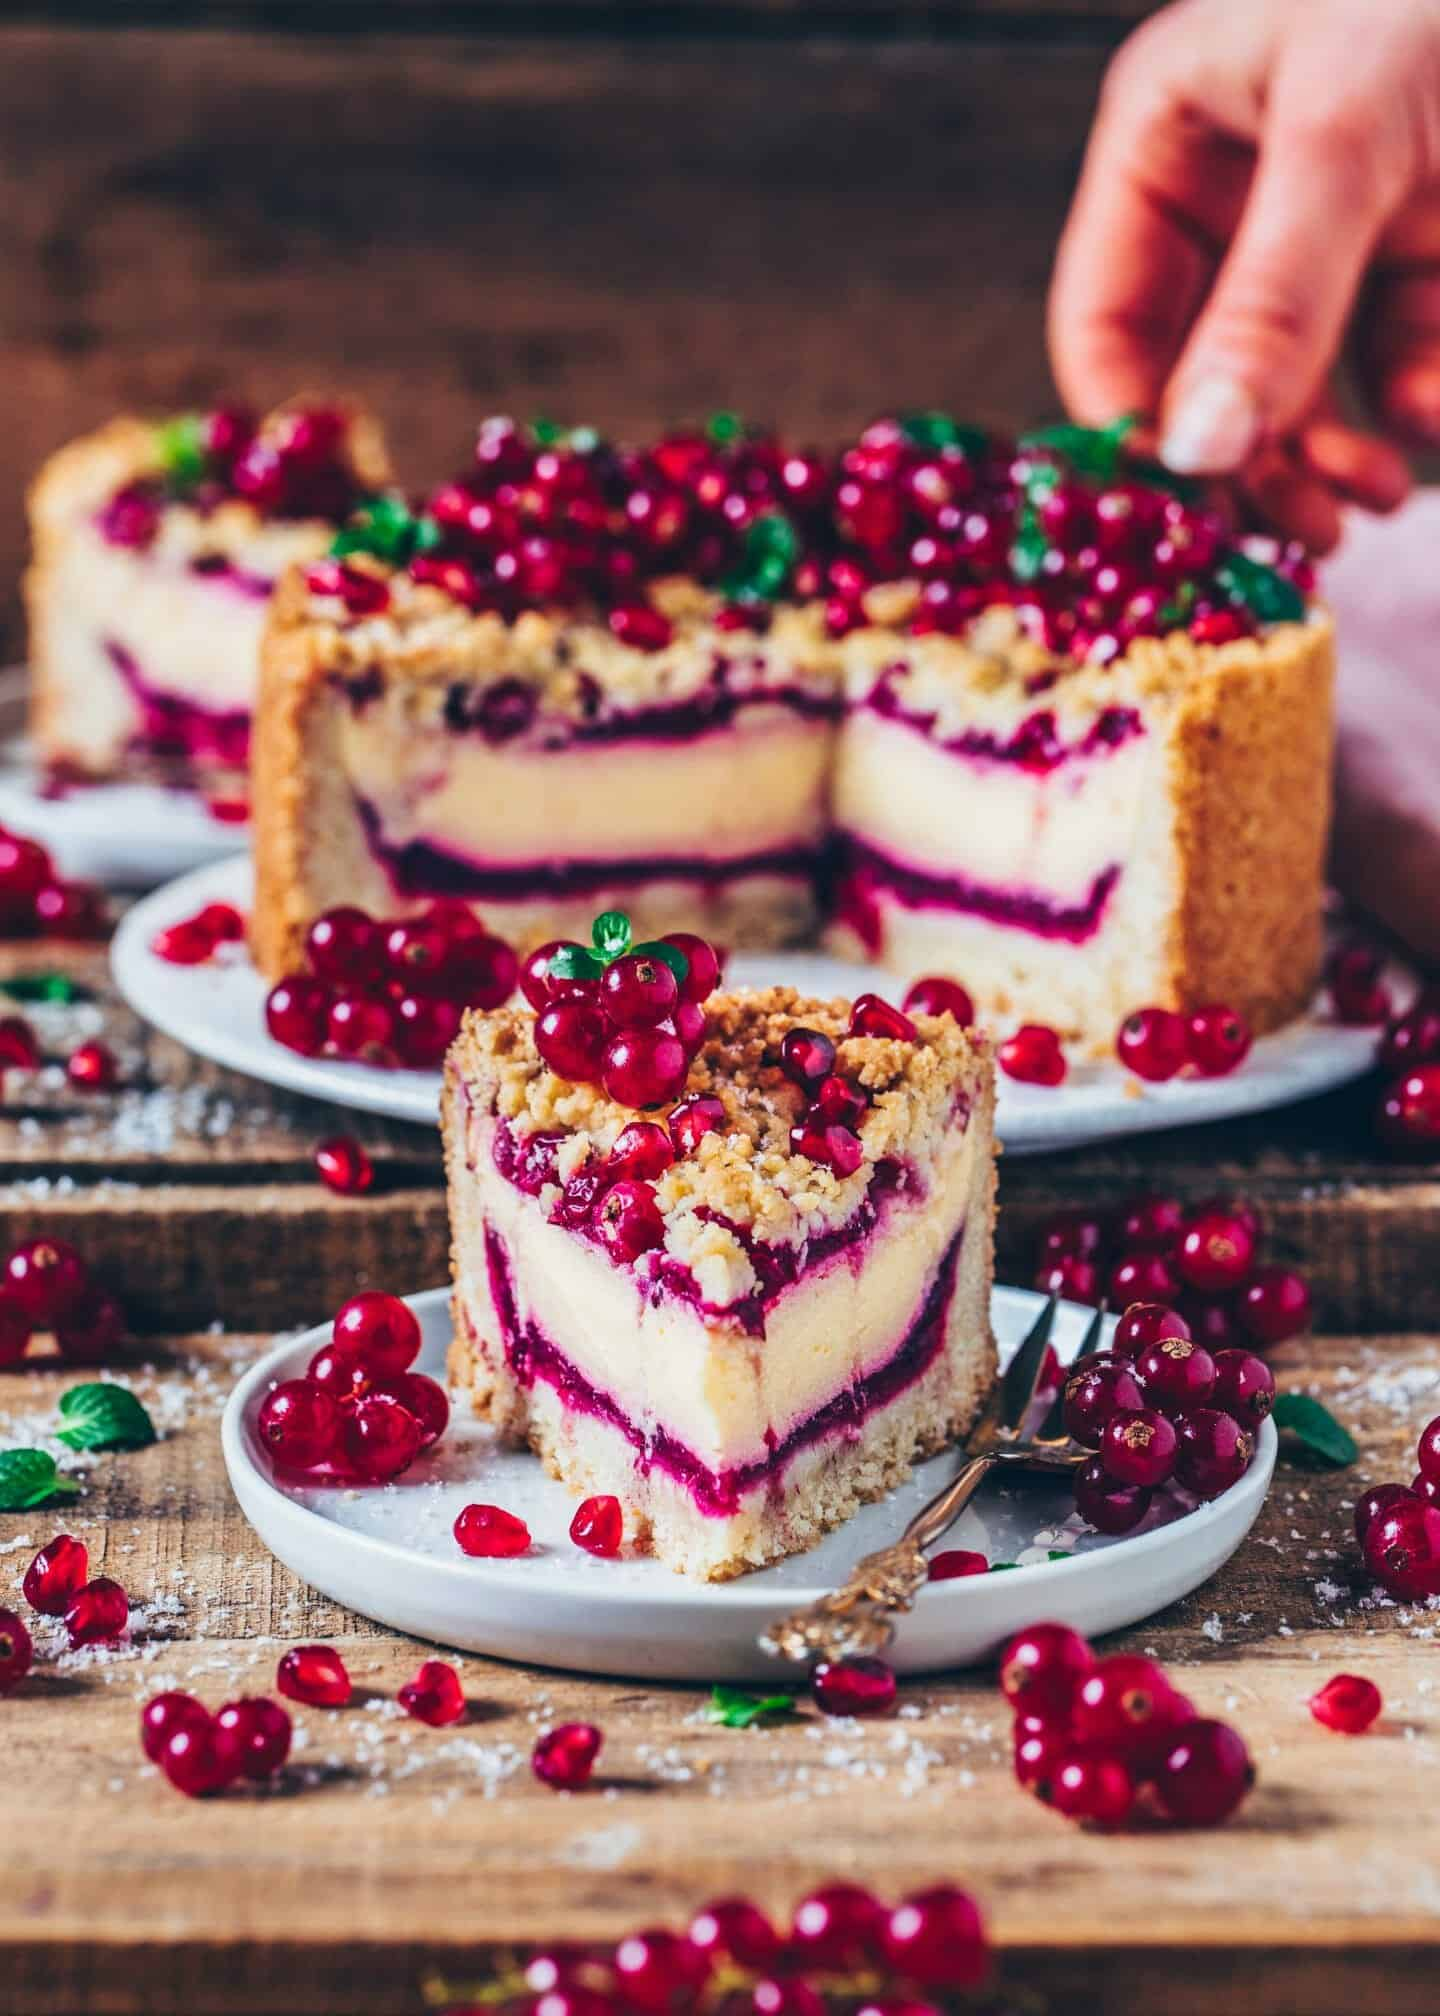 This vegan Currant Cheesecake with Streusel combines a Crumble Cake and a Cheesecake into one delicious dessert. It's the perfect combination, making for an amazing Vegan Cake for any occasion. You'll love how easily it can be made!